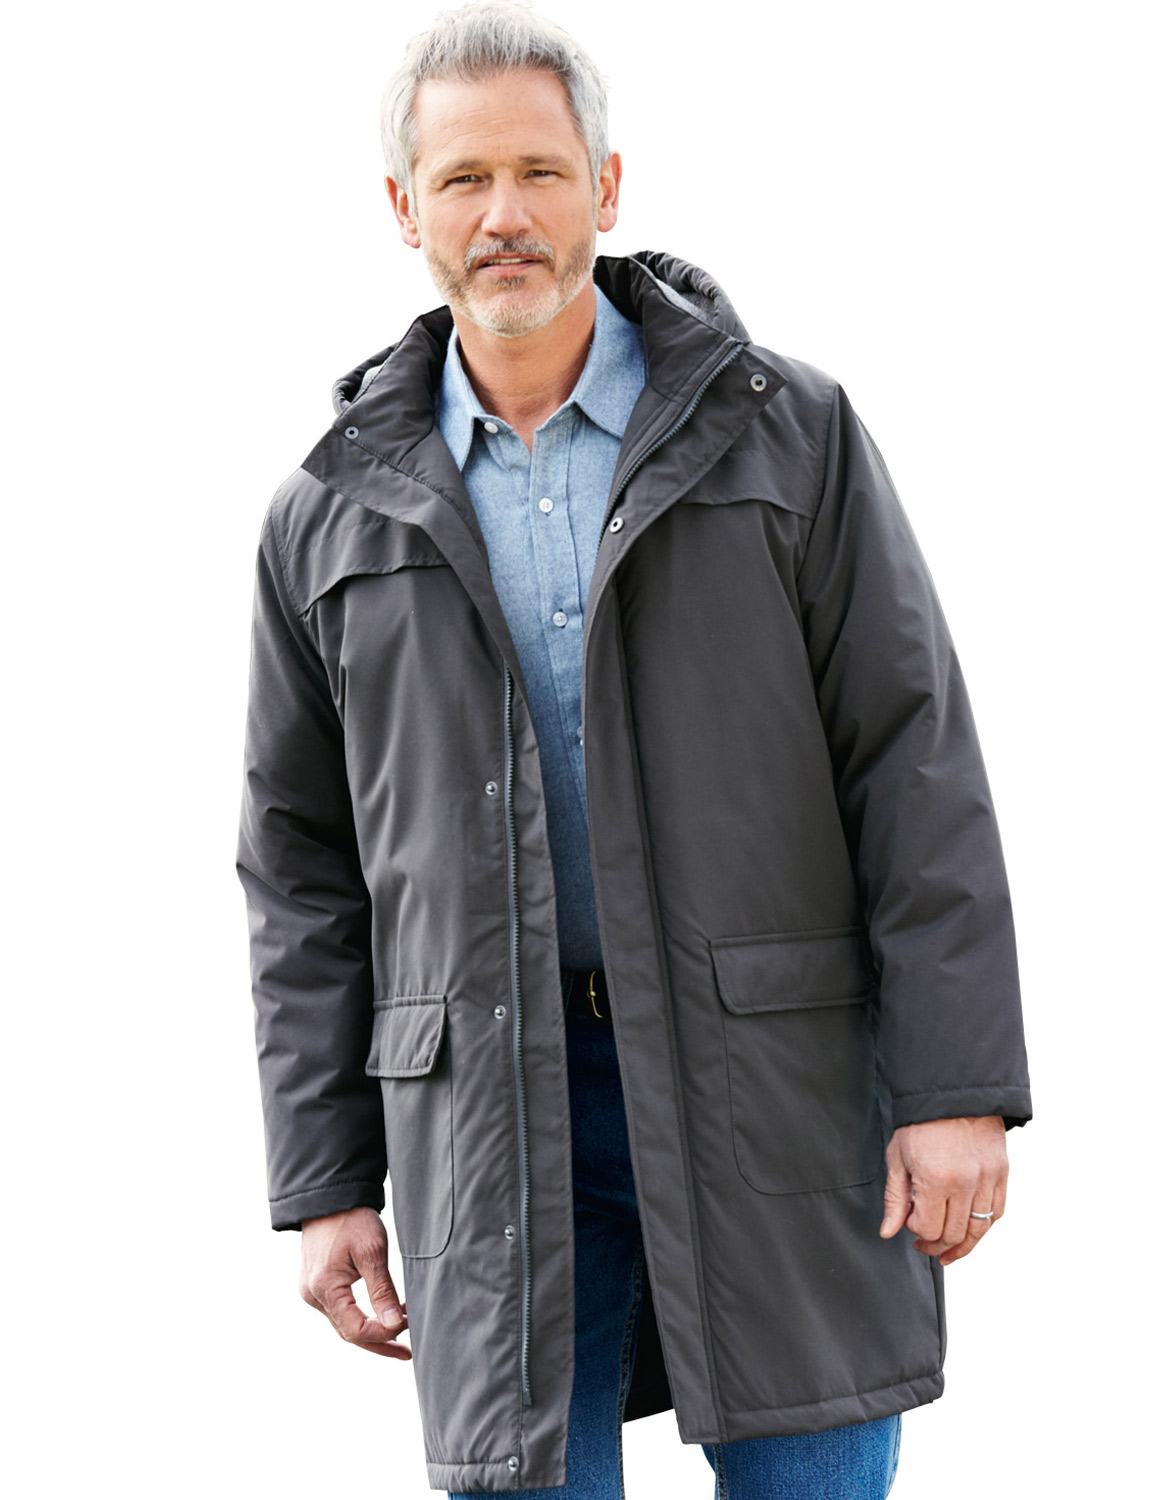 Find the best Warm-Up Jacket, Fleece Lined at humorrmundiall.ga Our high quality Men's Outerwear and Jackets are thoughtfully designed and built to last season after season.